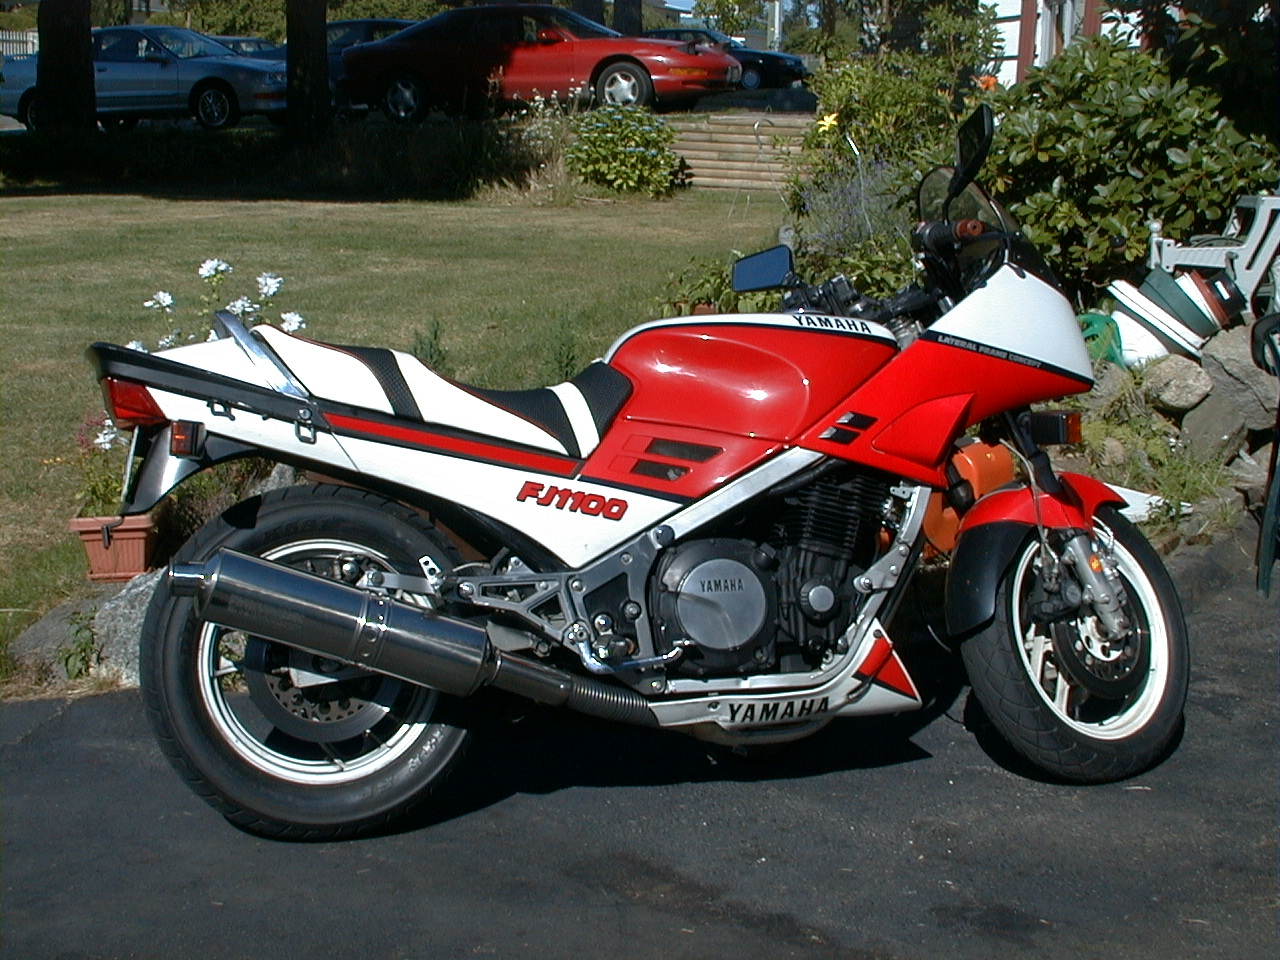 Yamaha RD 350 (reduced effect) 1985 #7